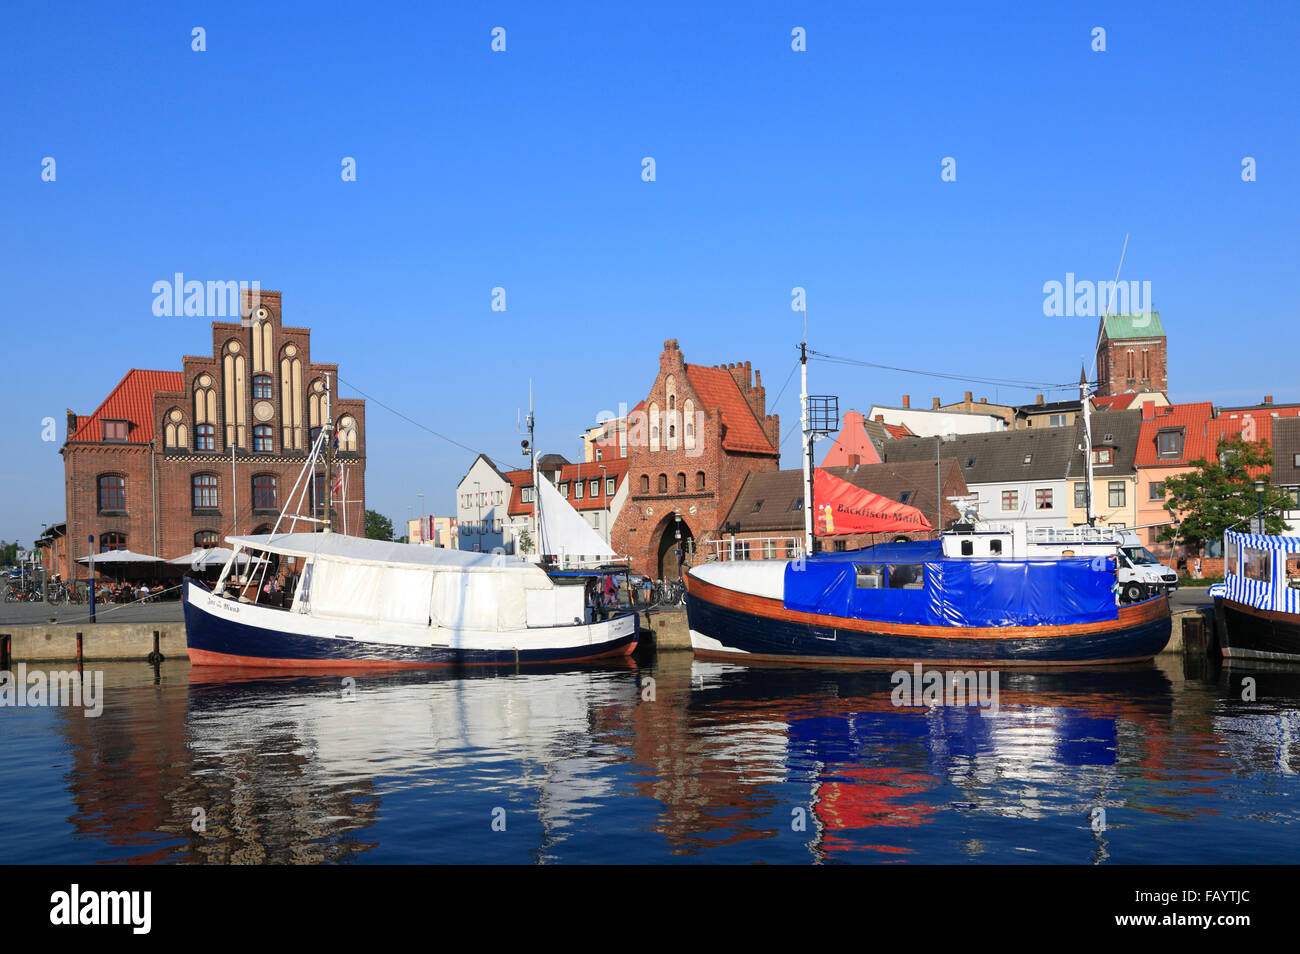 Fish trawler in the old harbour, Wismar, Baltic Sea, Mecklenburg Western Pomerania, Germany, Europe - Stock Image